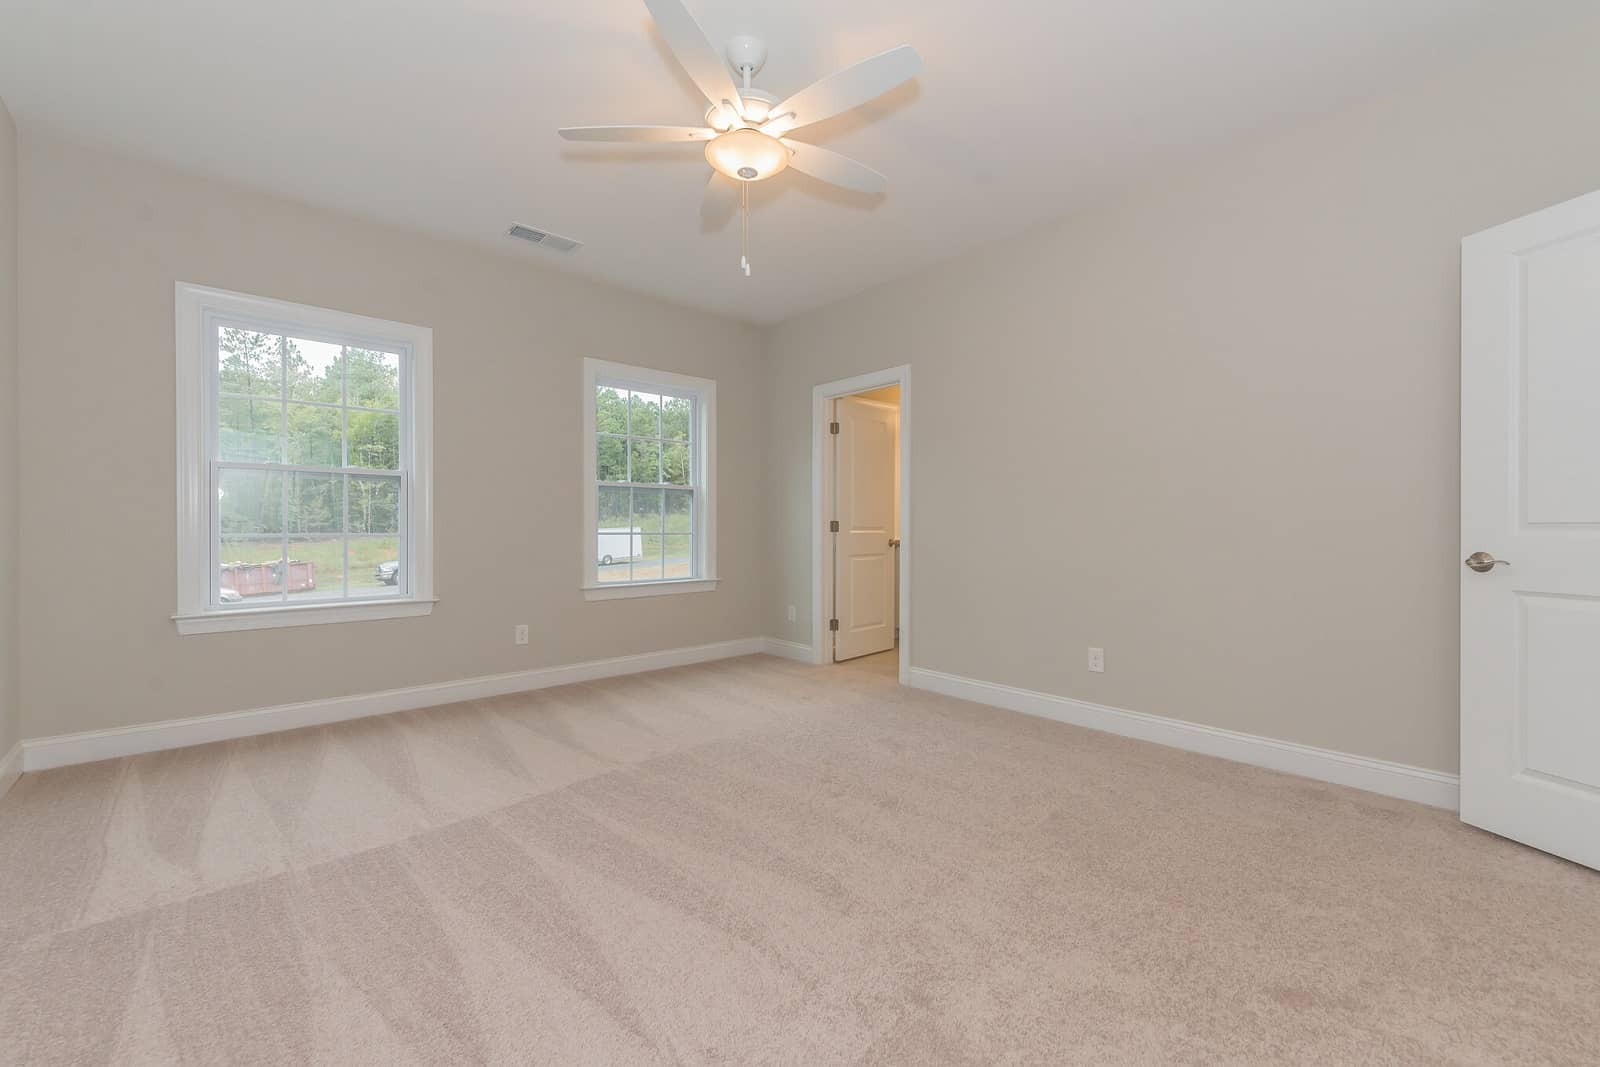 Real Estate Photography in Rock Hill - NC - USA - Bedroom View